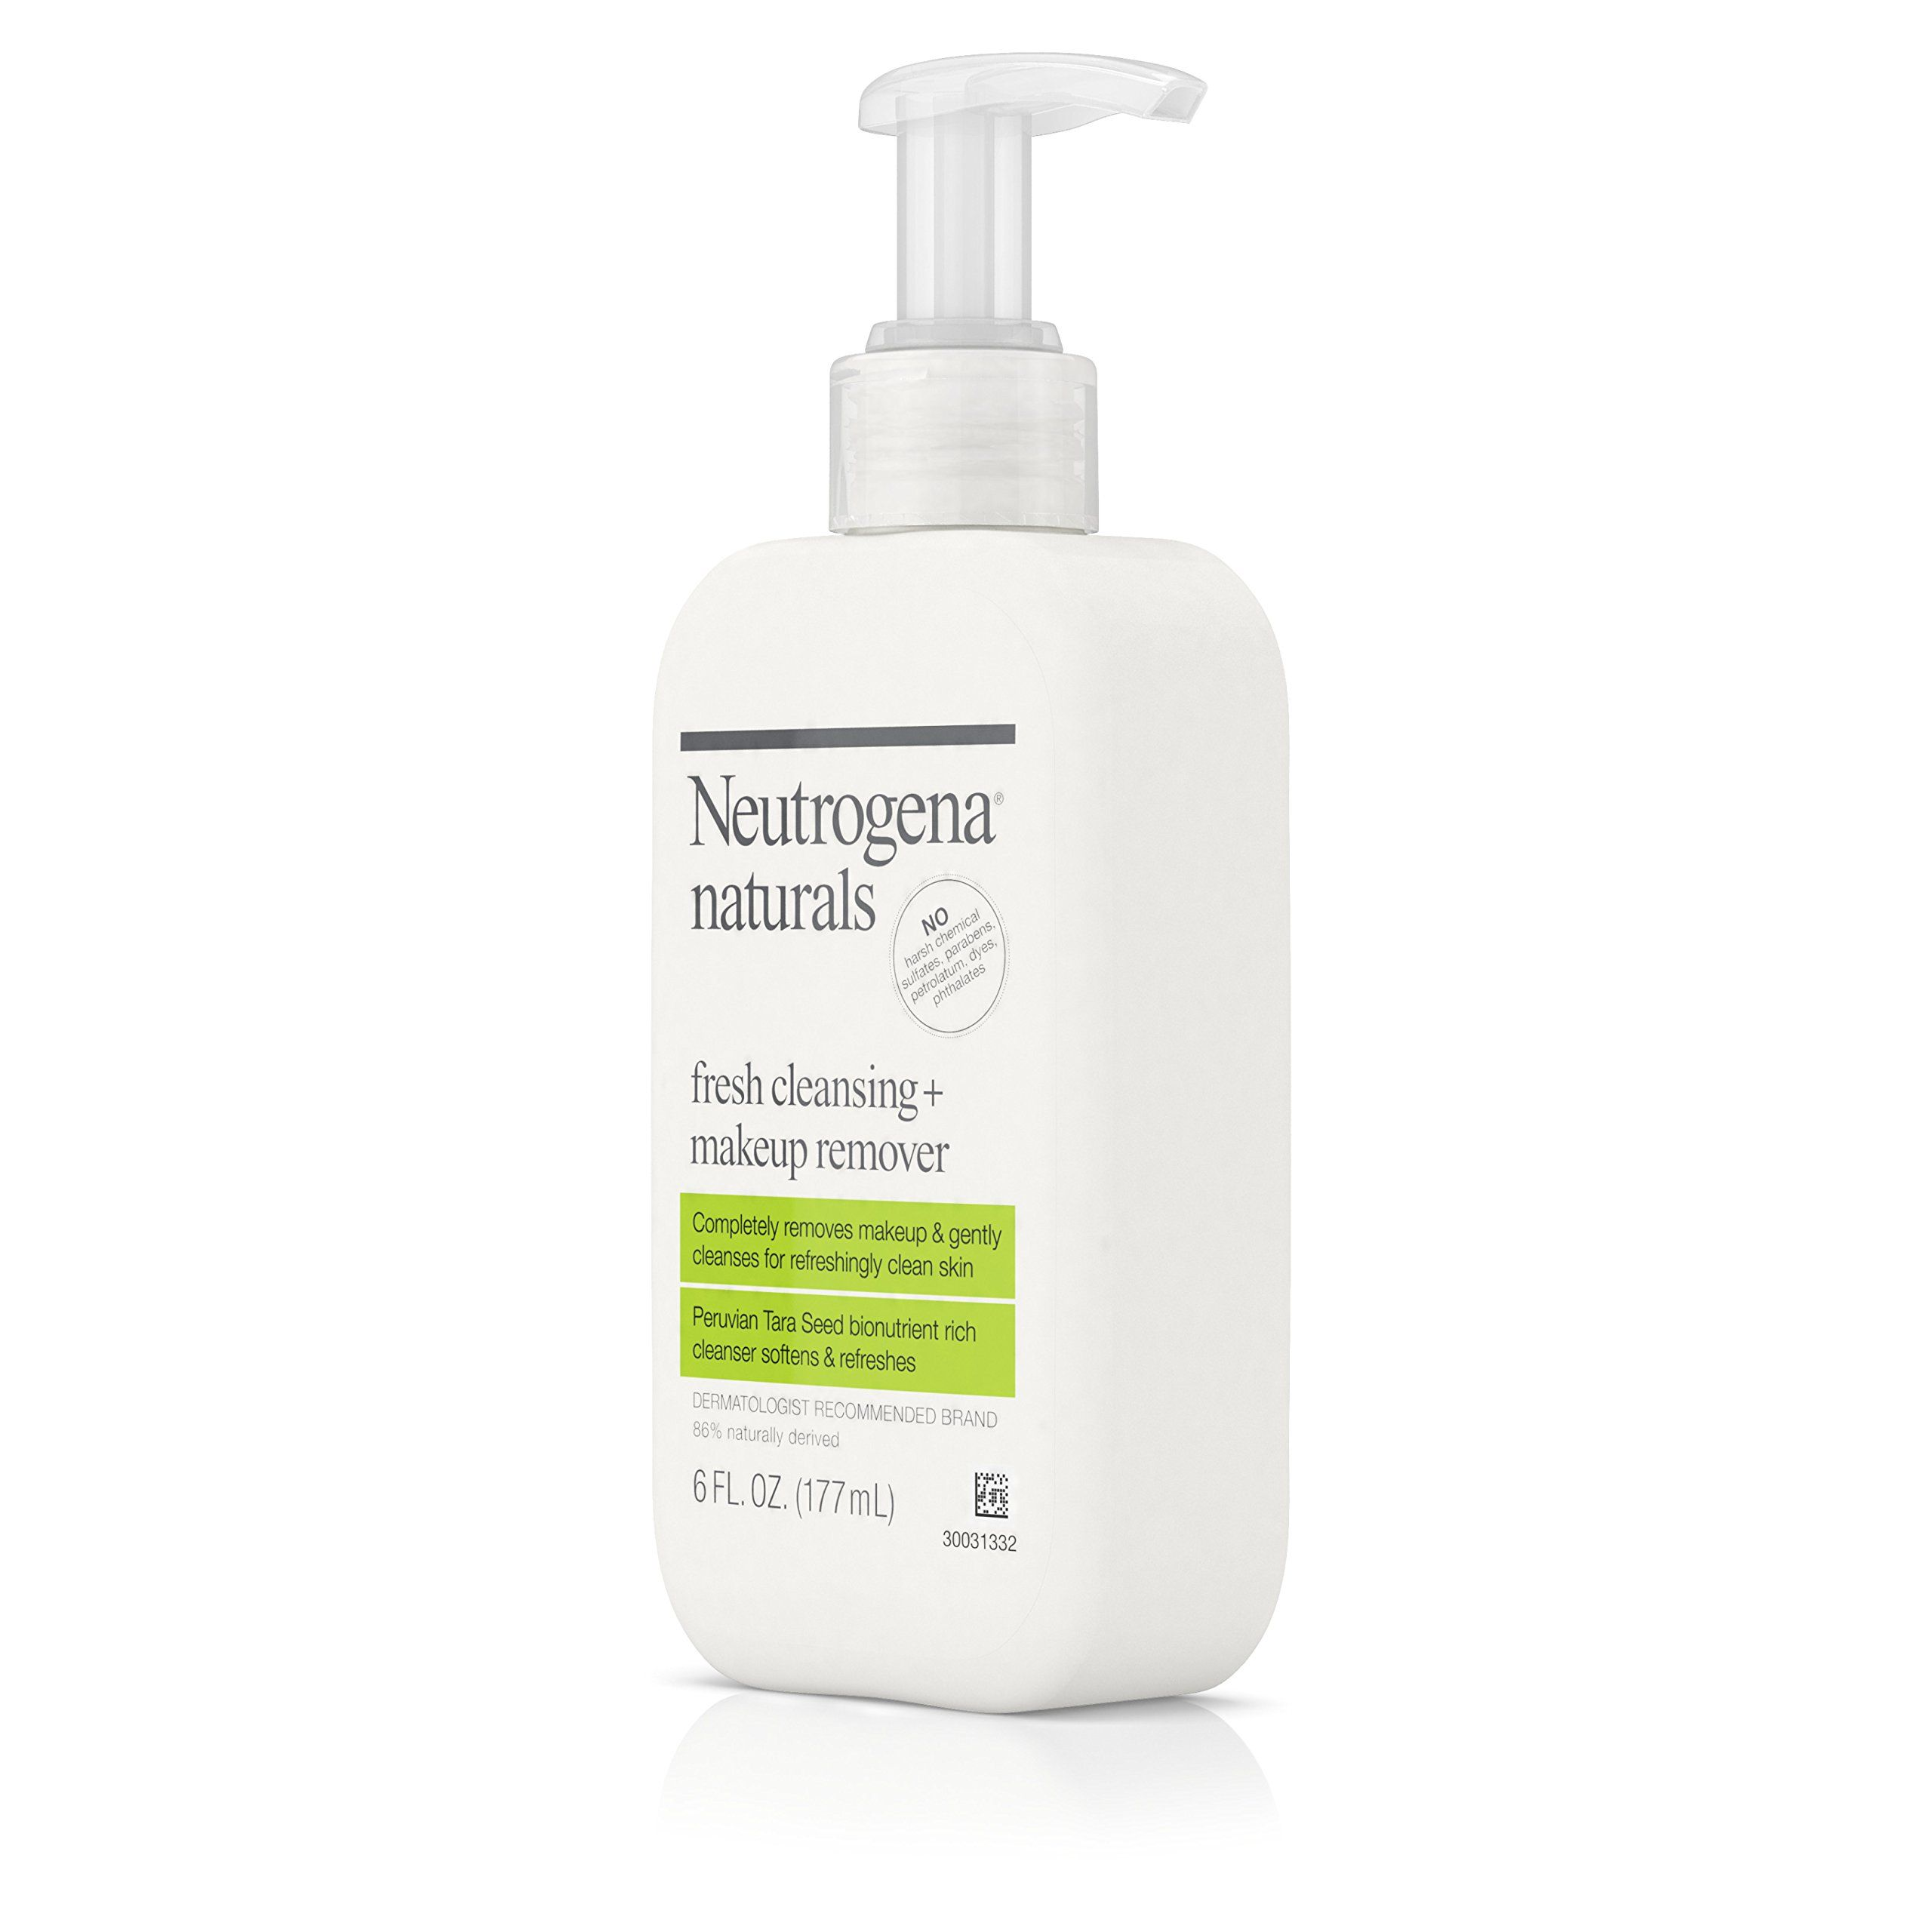 Neutrogena Naturals Fresh Cleansing Daily Face Wash Makeup